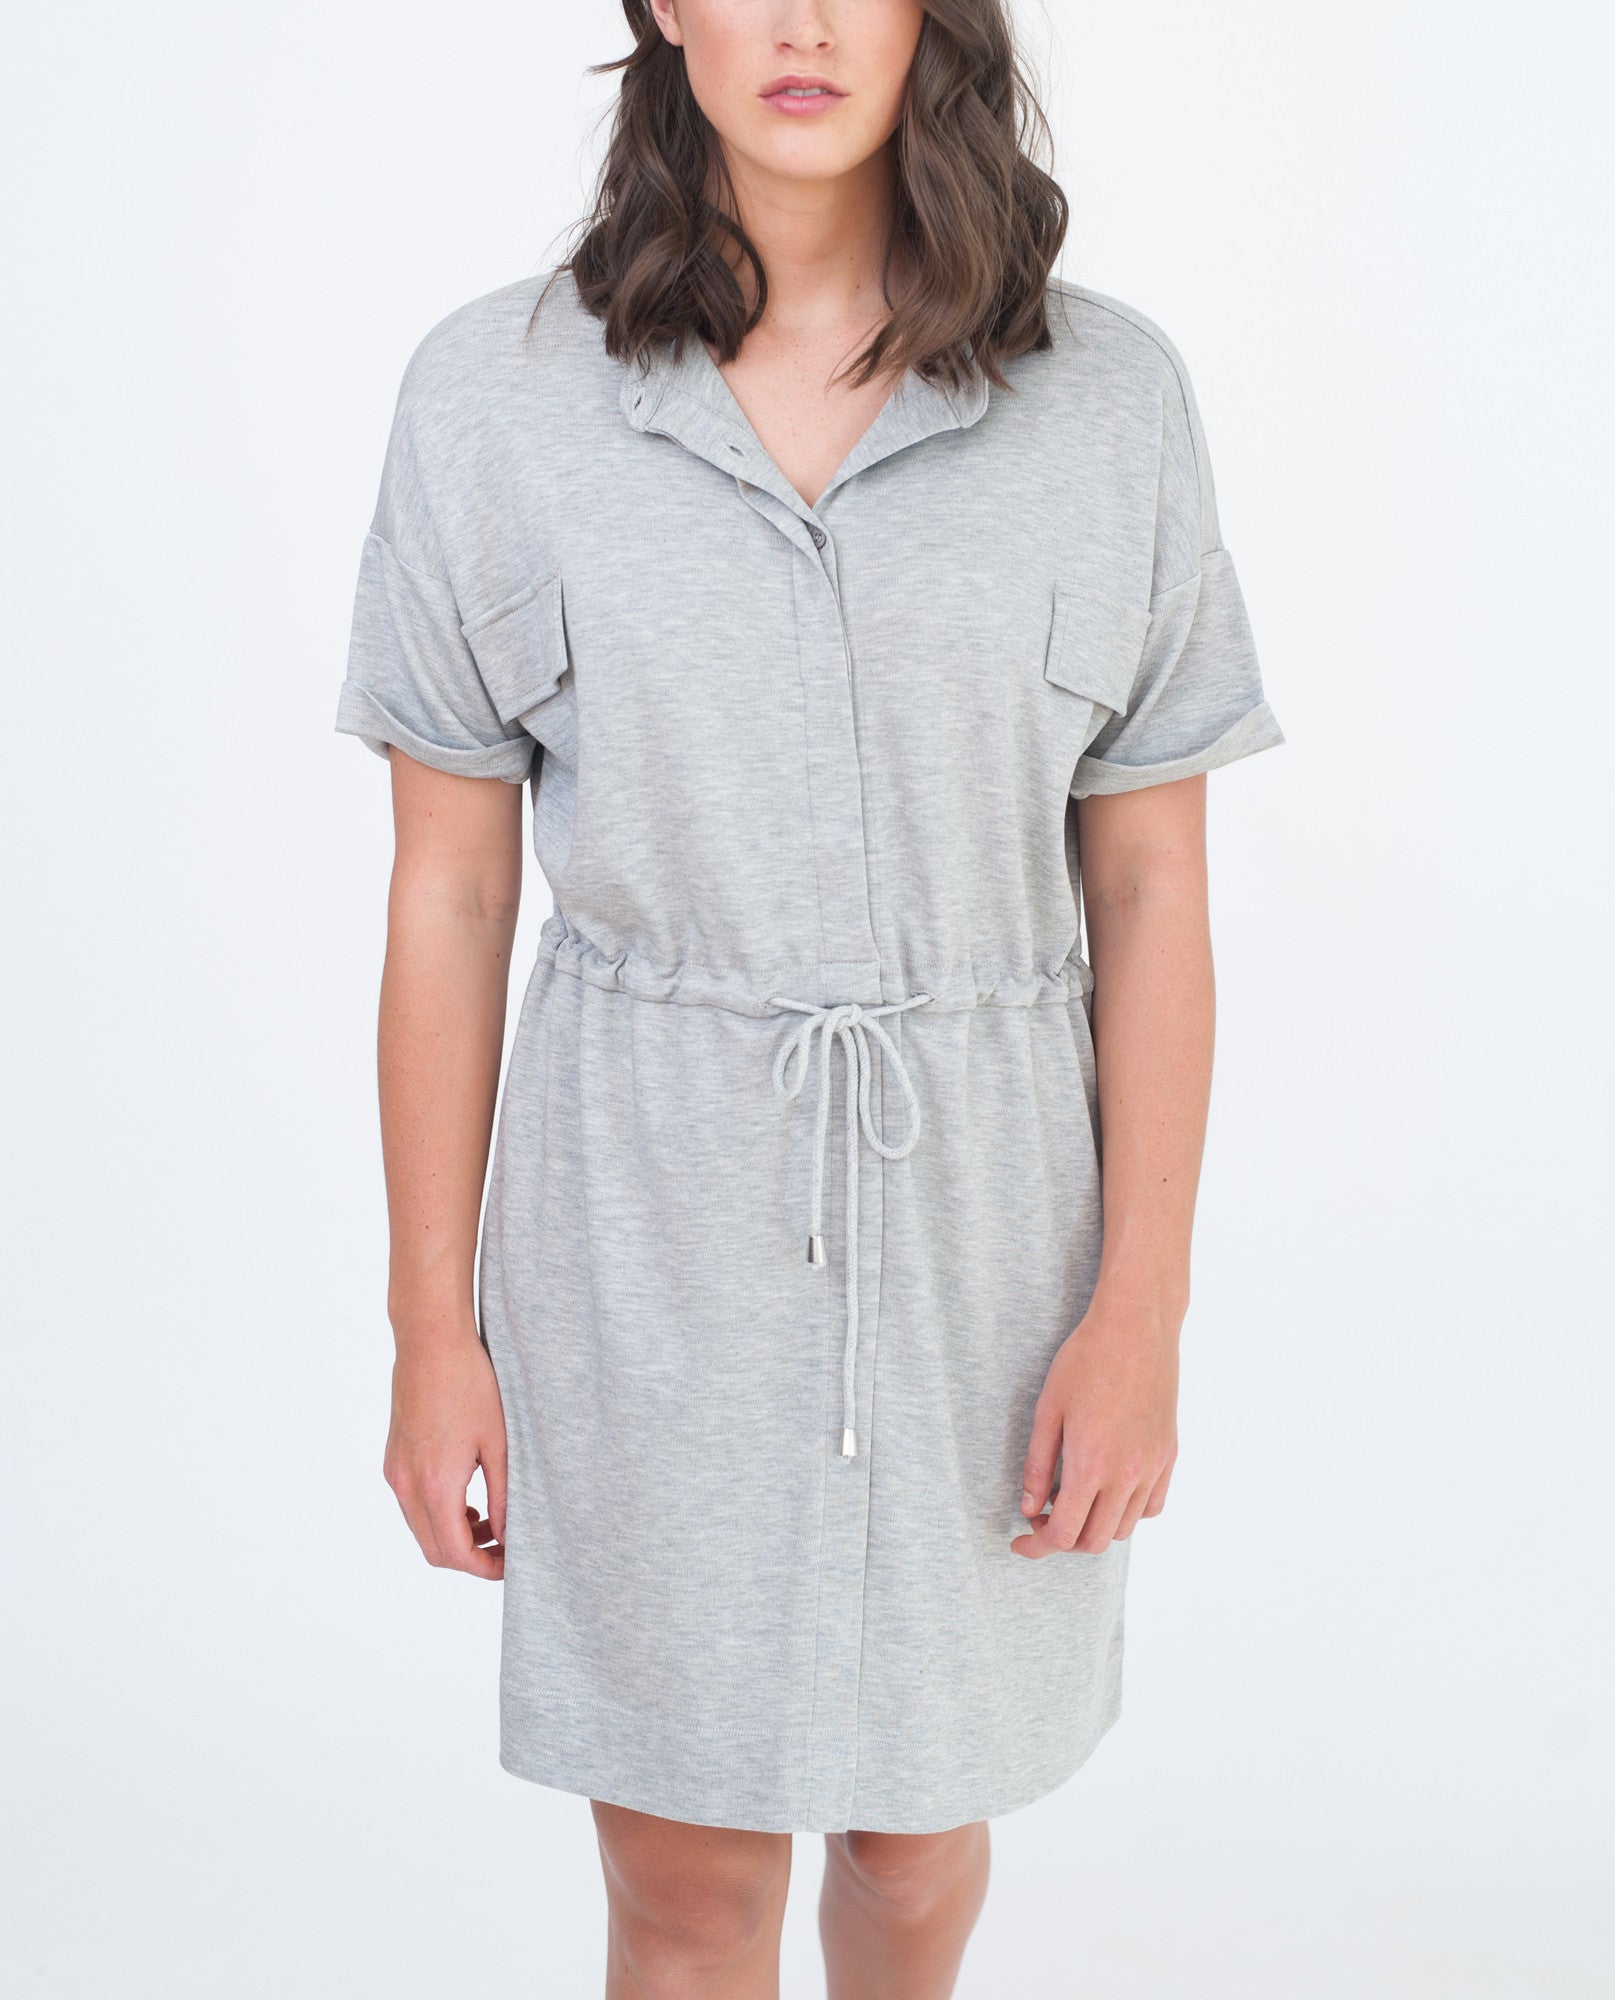 MILA Lyocell And Cotton Shirt Dress In Light Grey from Beaumont Organic